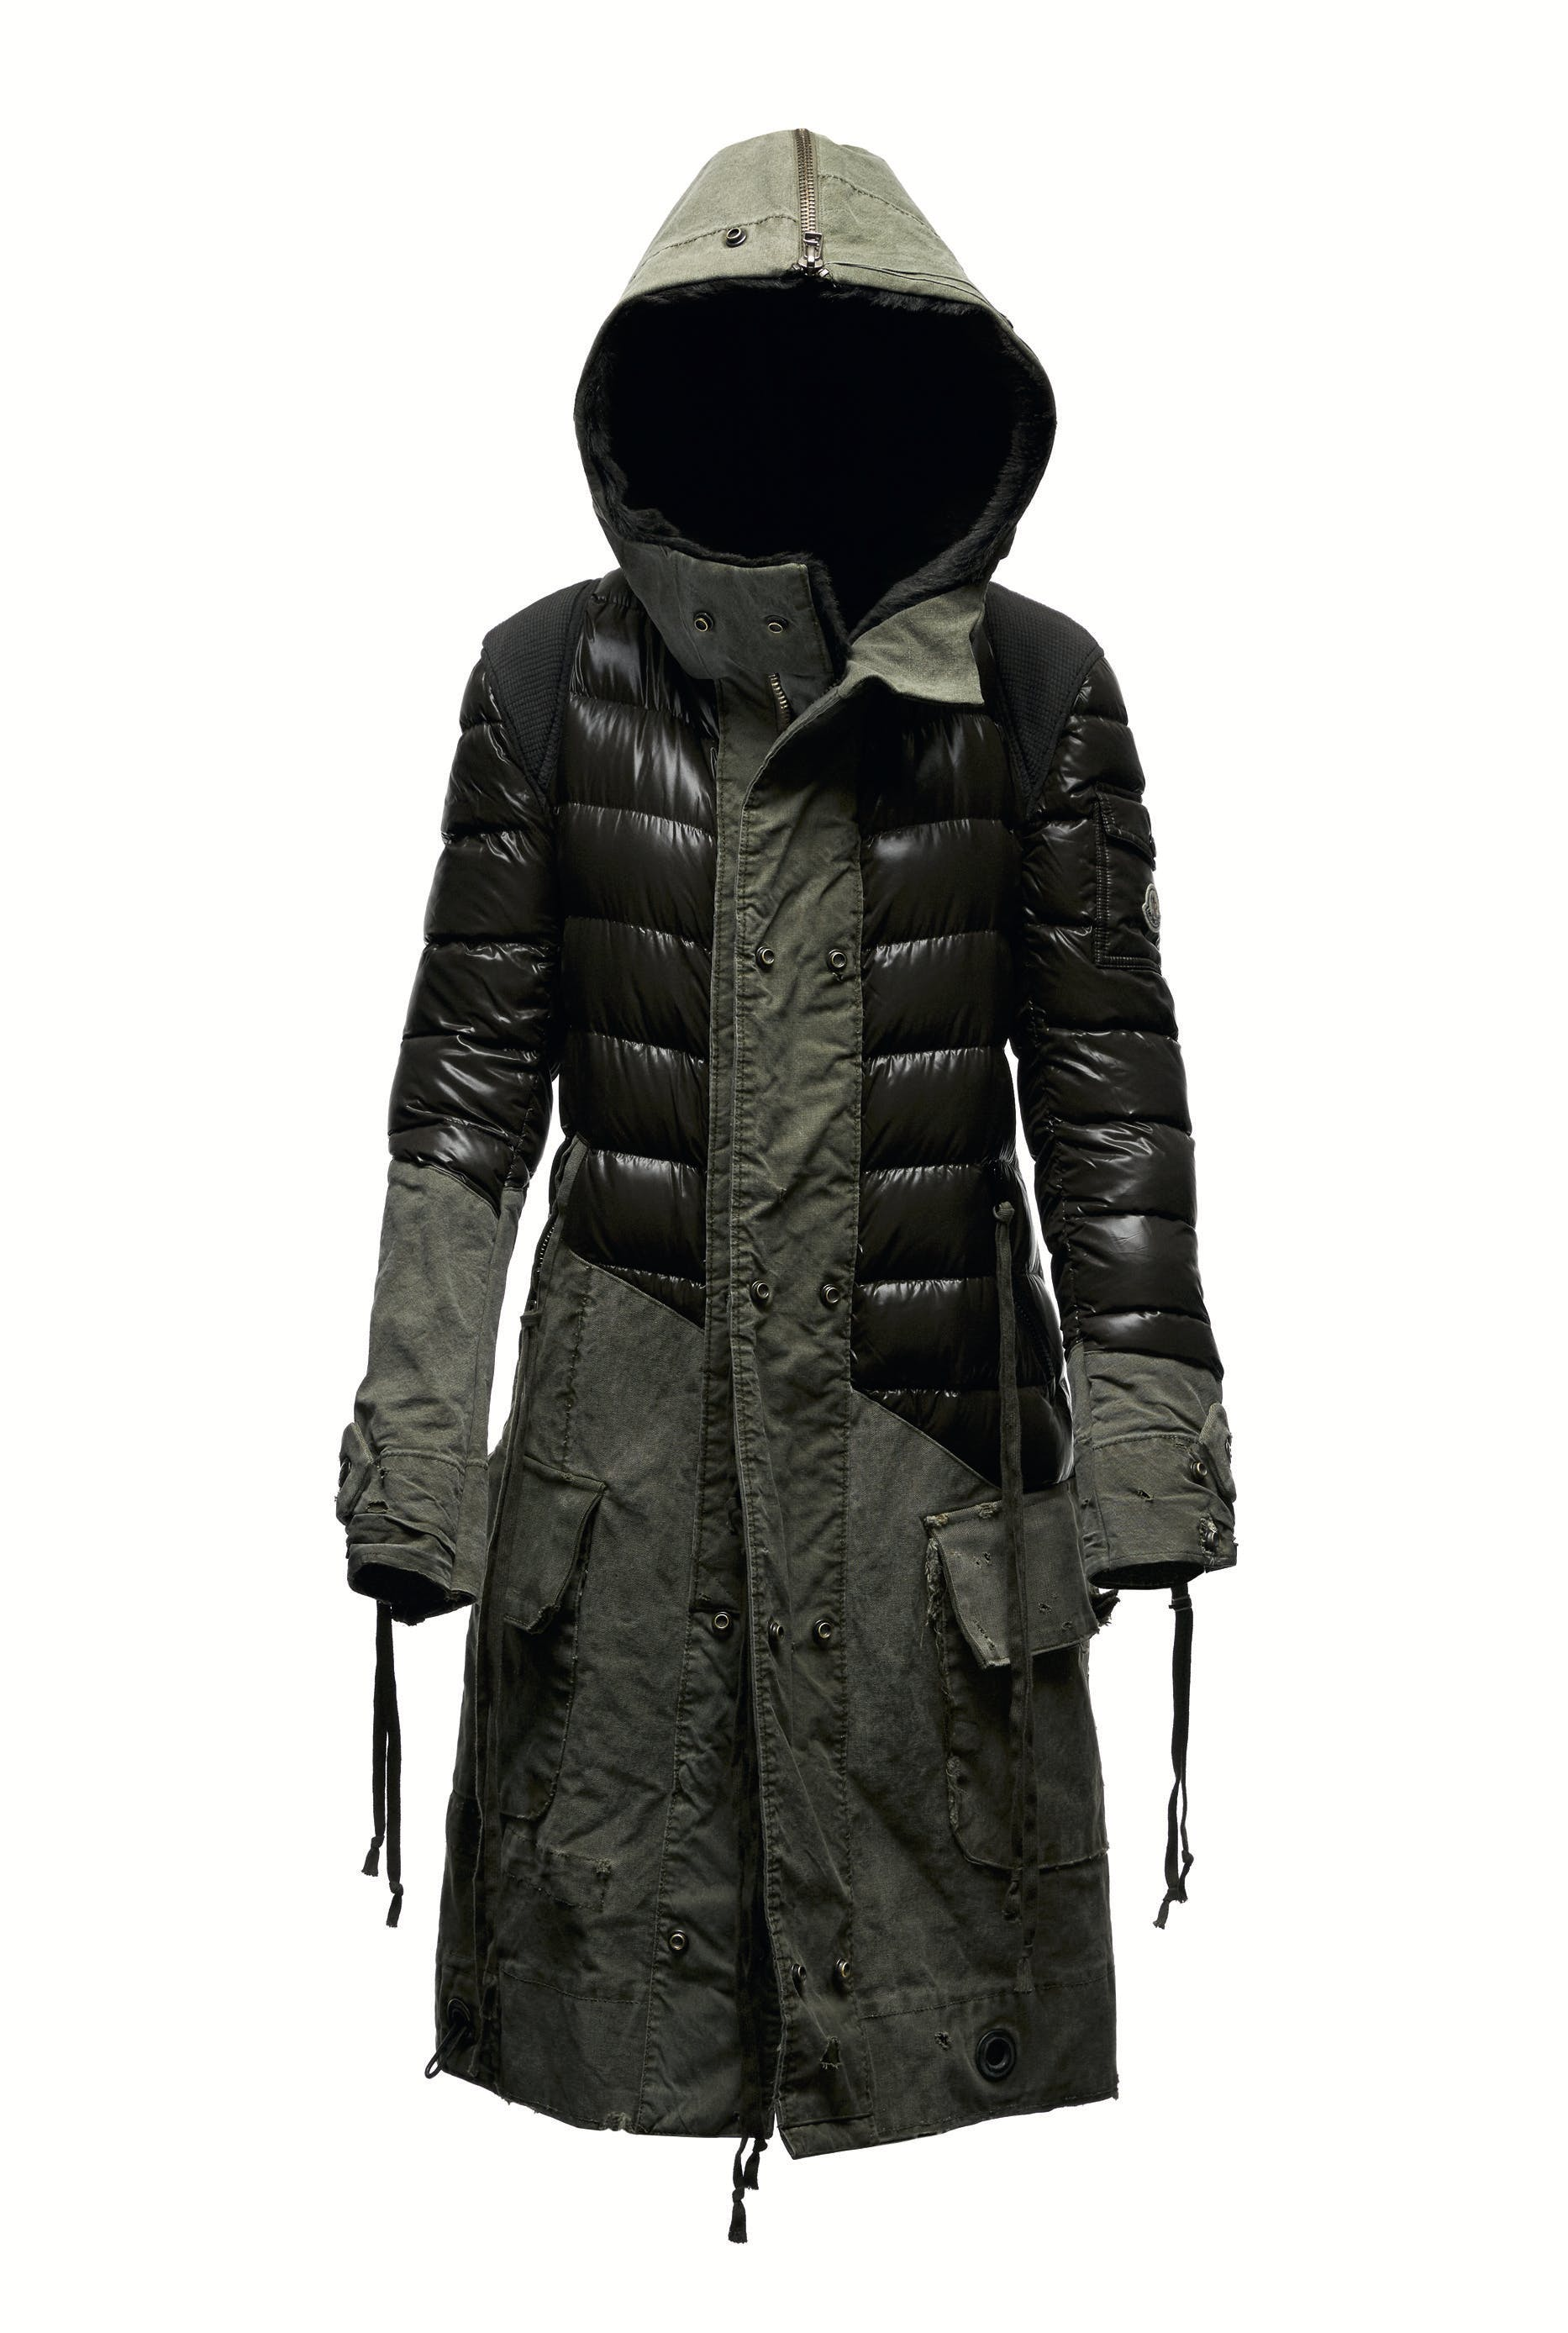 Moncler x Greg Lauren article 05